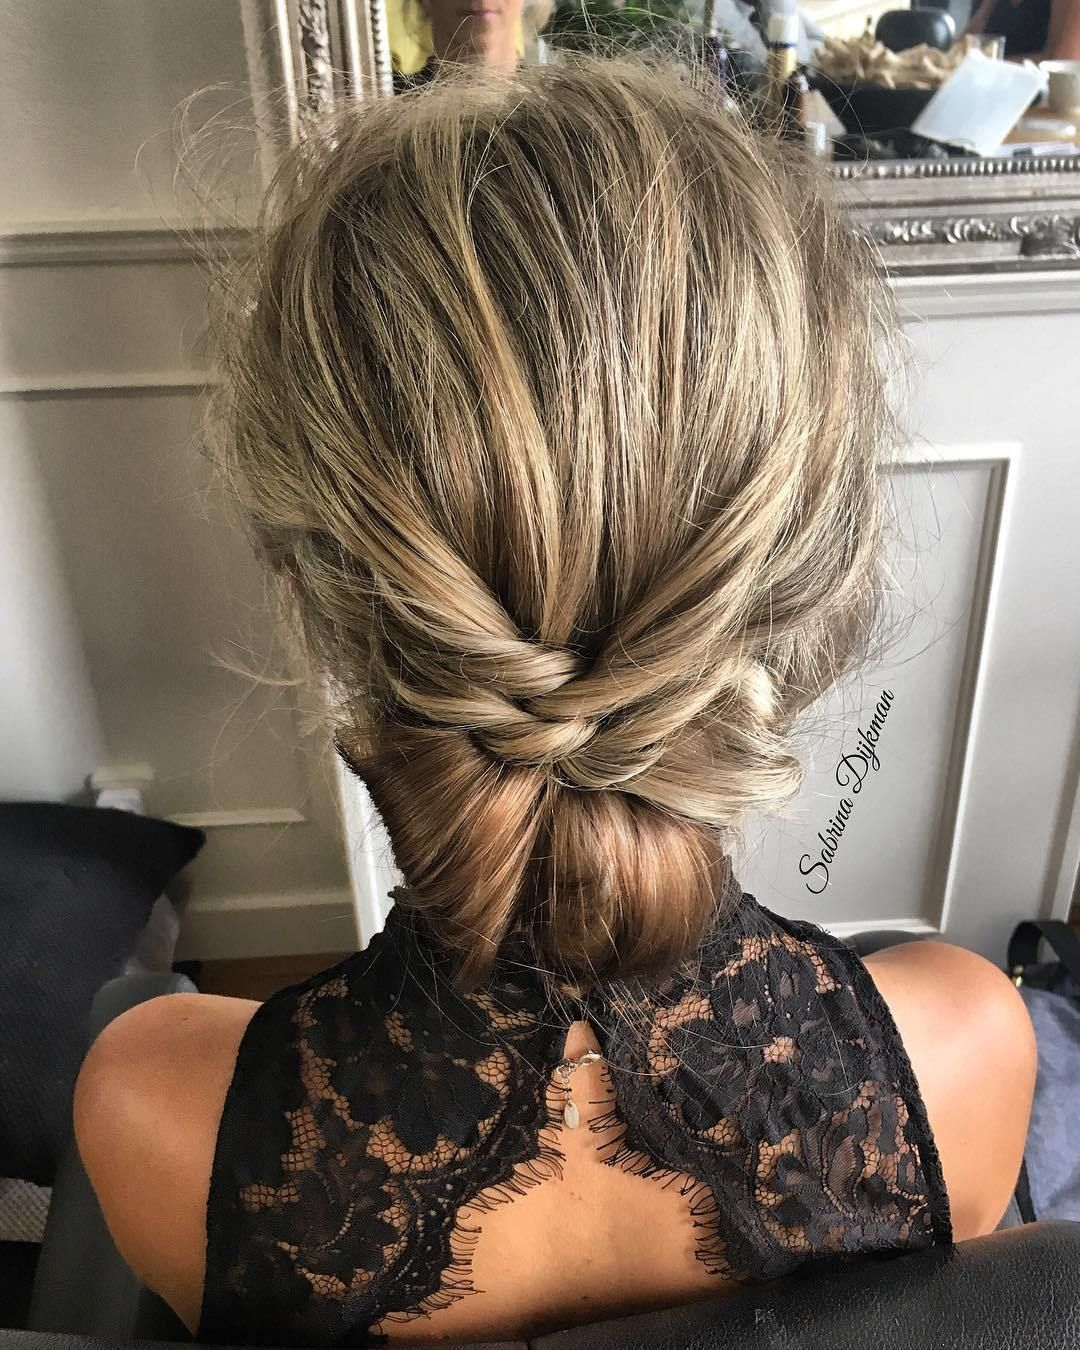 Top 20 Fabulous Updo Wedding Hairstyles: Fabulous Textured Updo Hairstyle